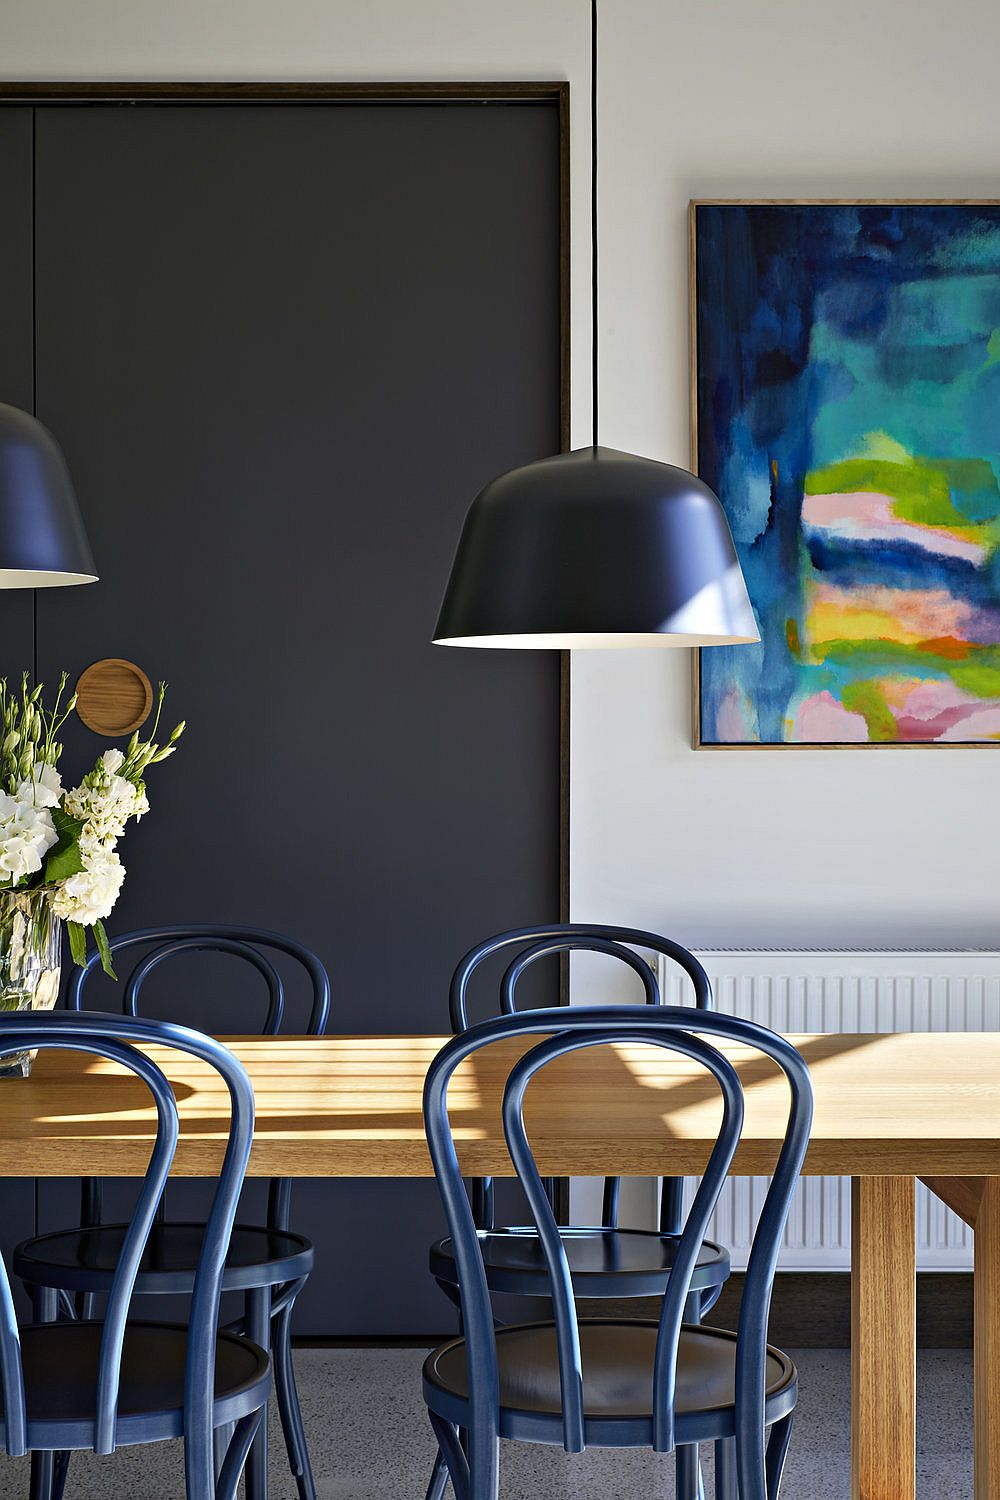 Dining table chairs, pendants and wall art add color to the contemporary neutral dining room